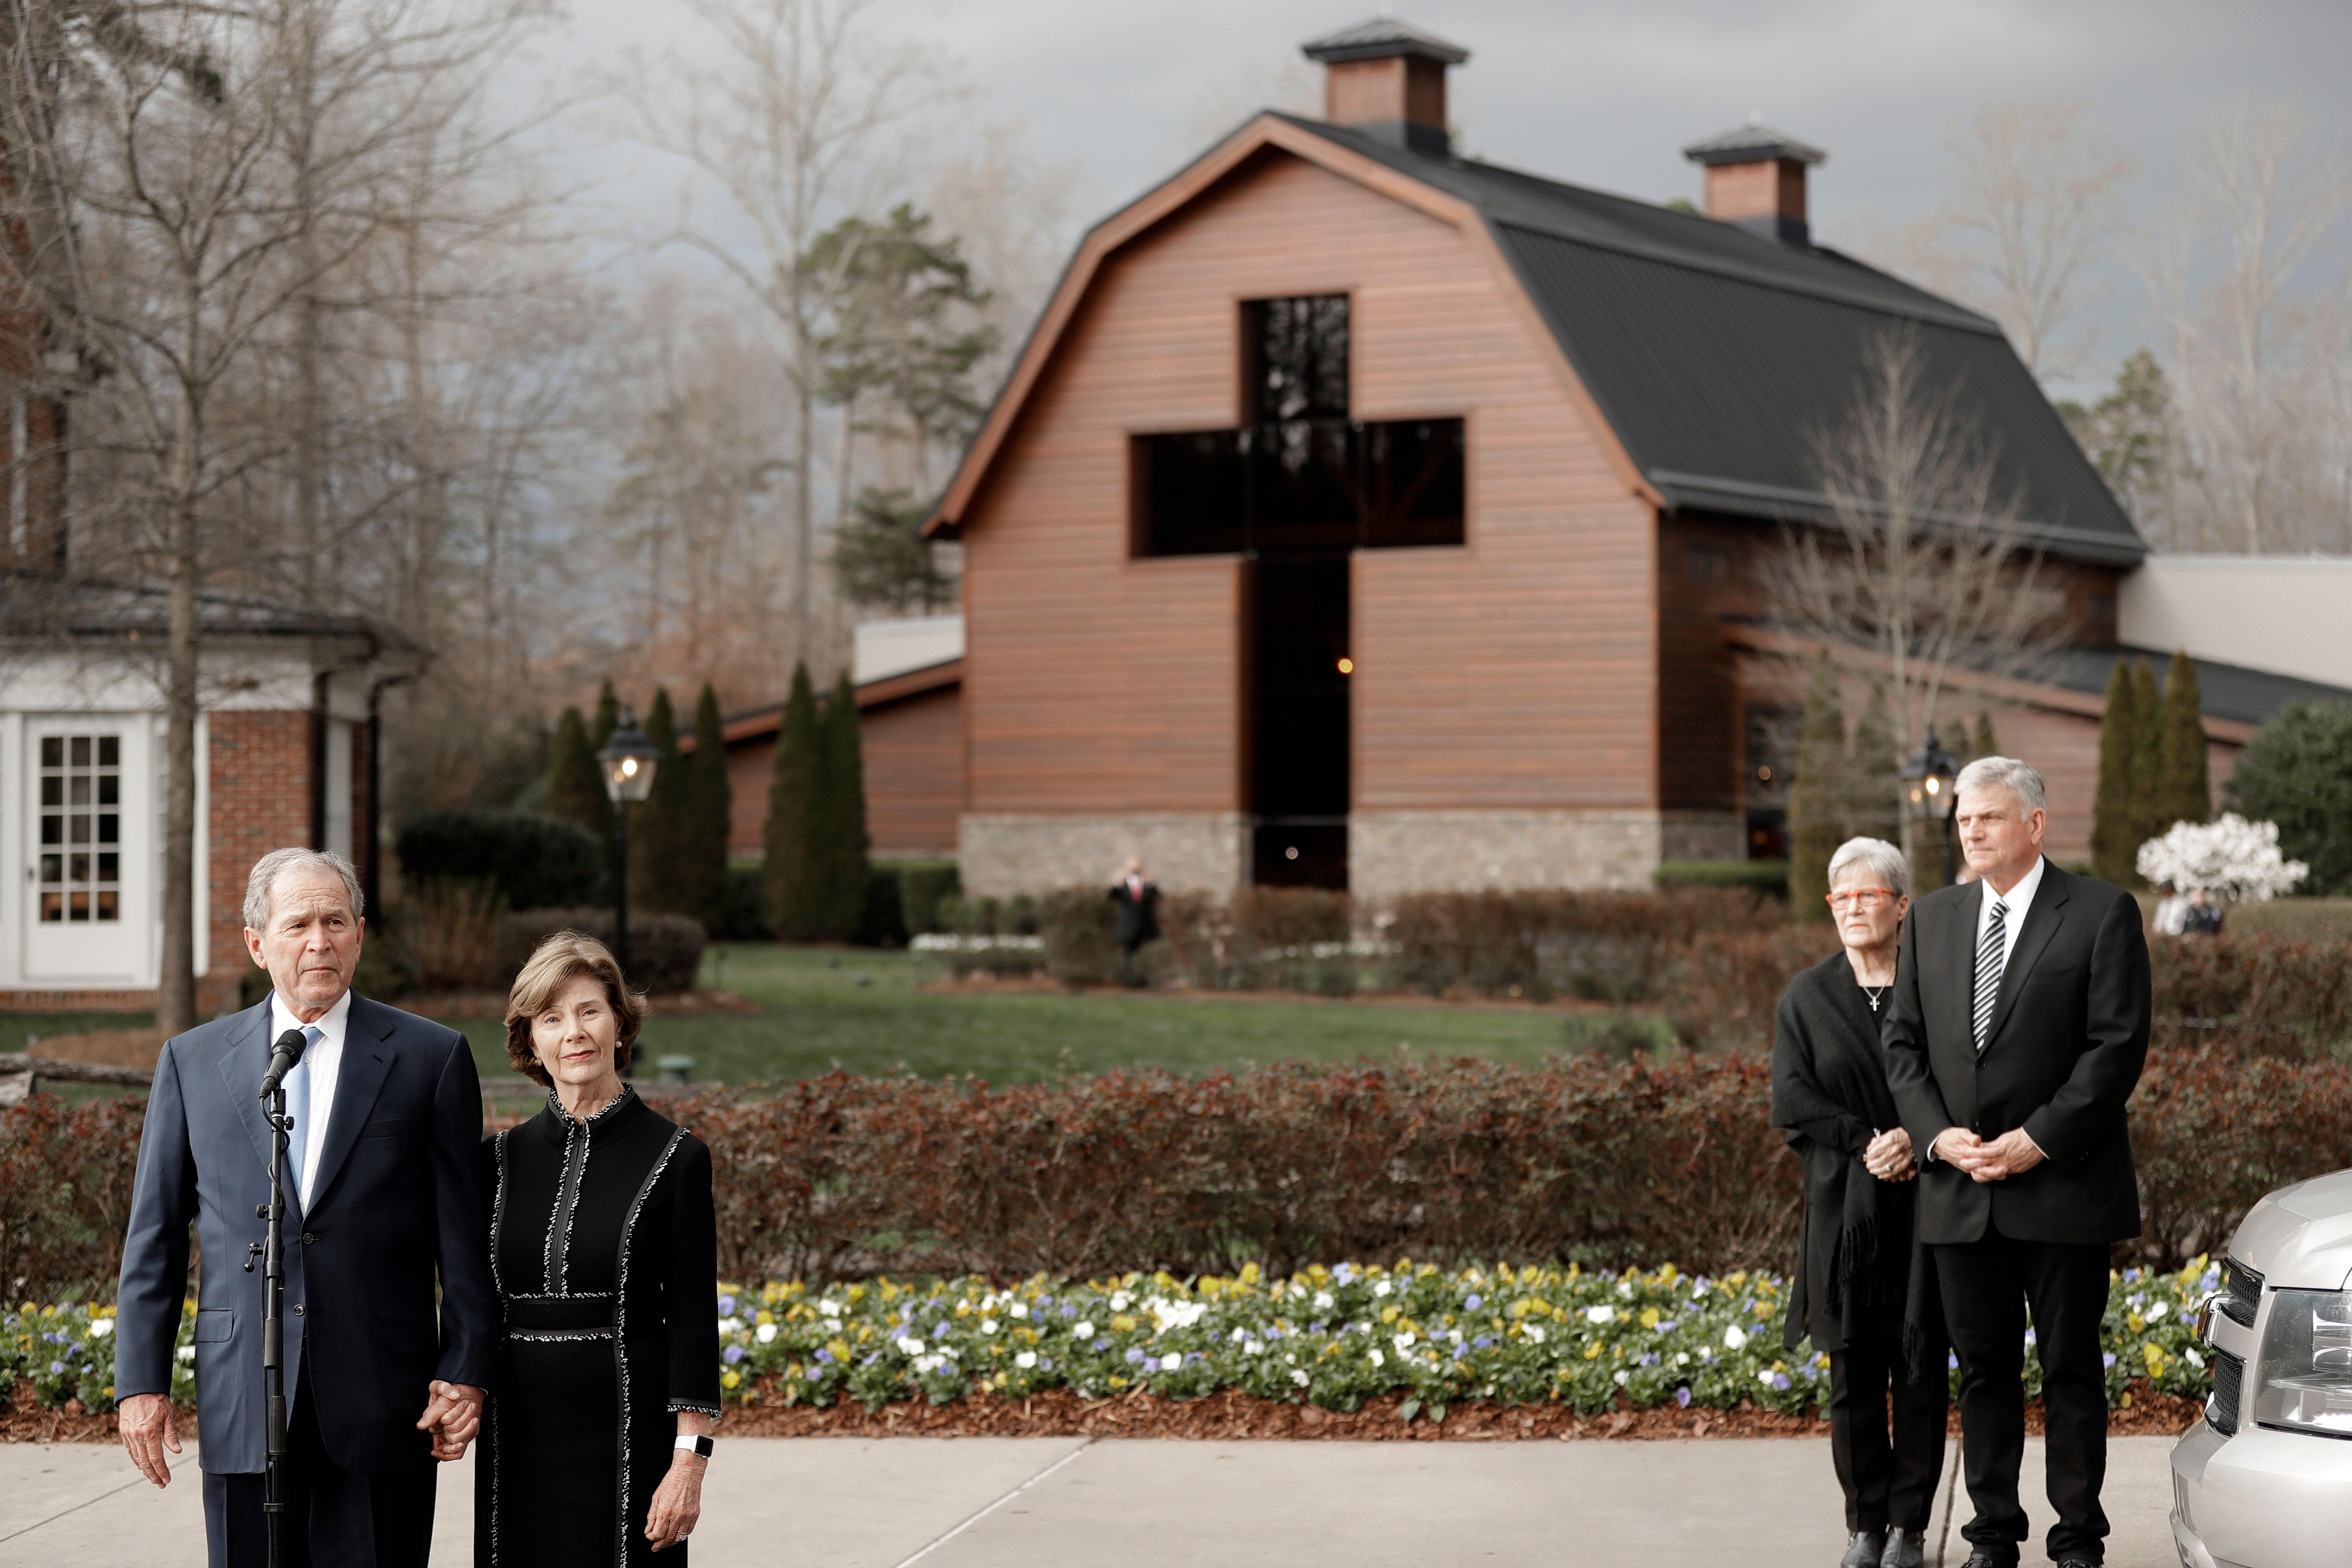 Former President George W. Bush, left, speaks to the media as wife Laura Bush, left, and Franklin Graham, back right, and his wife Jane Graham, back left, listen after paying their respects to Billy Graham during a public viewing at the Billy Graham Library in Charlotte, N.C., Monday, Feb. 26, 2018. (AP Photo/Chuck Burton)